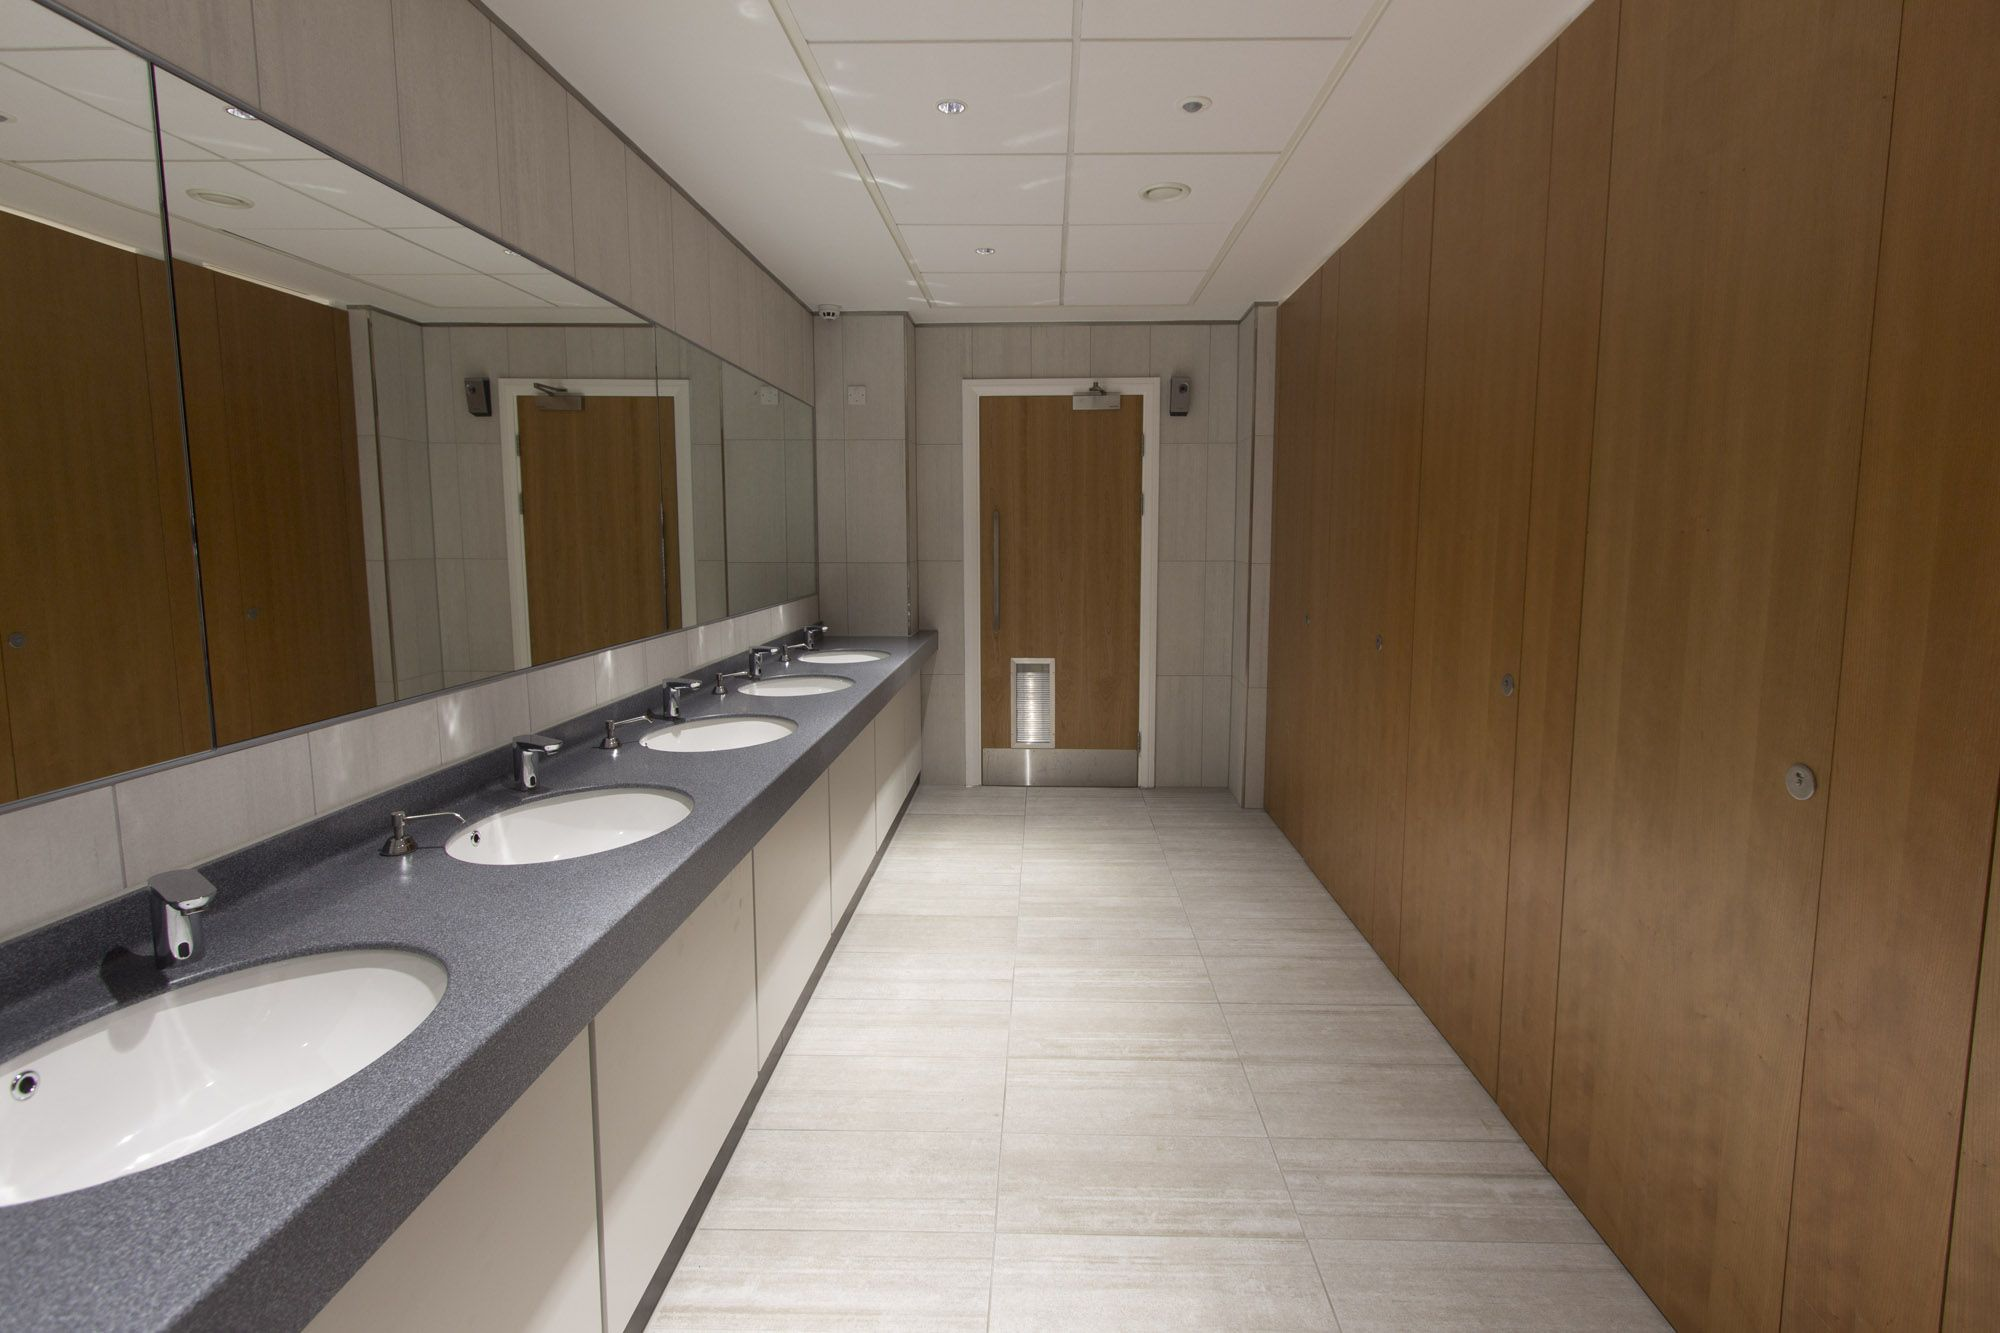 Modern Bathroom Design At A Contemporary Commercial Office